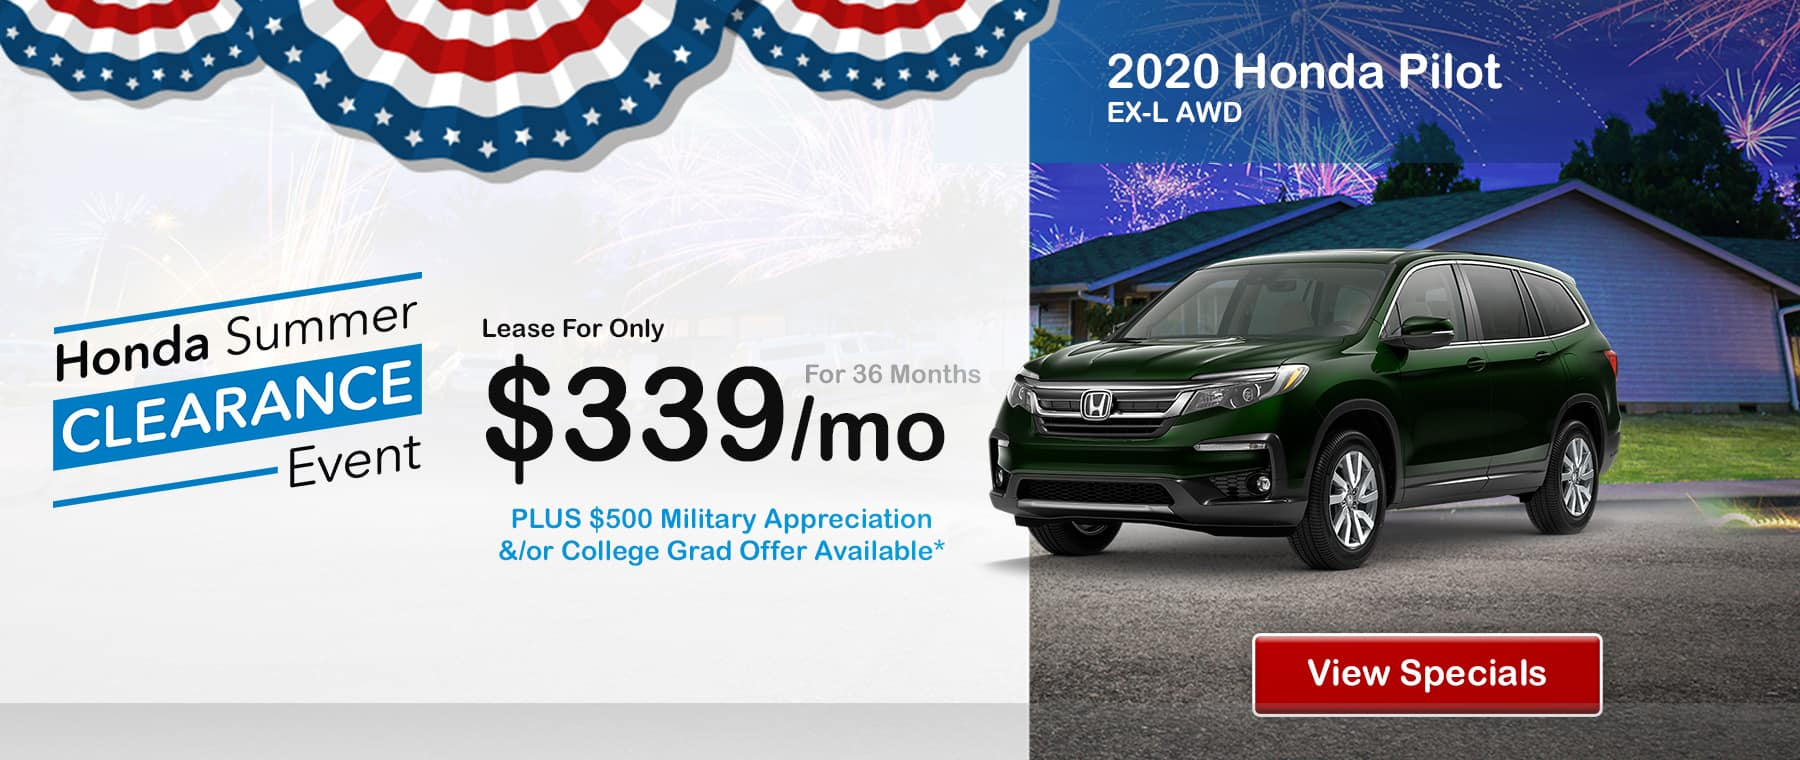 2020 Honda Pilot July Special Offer